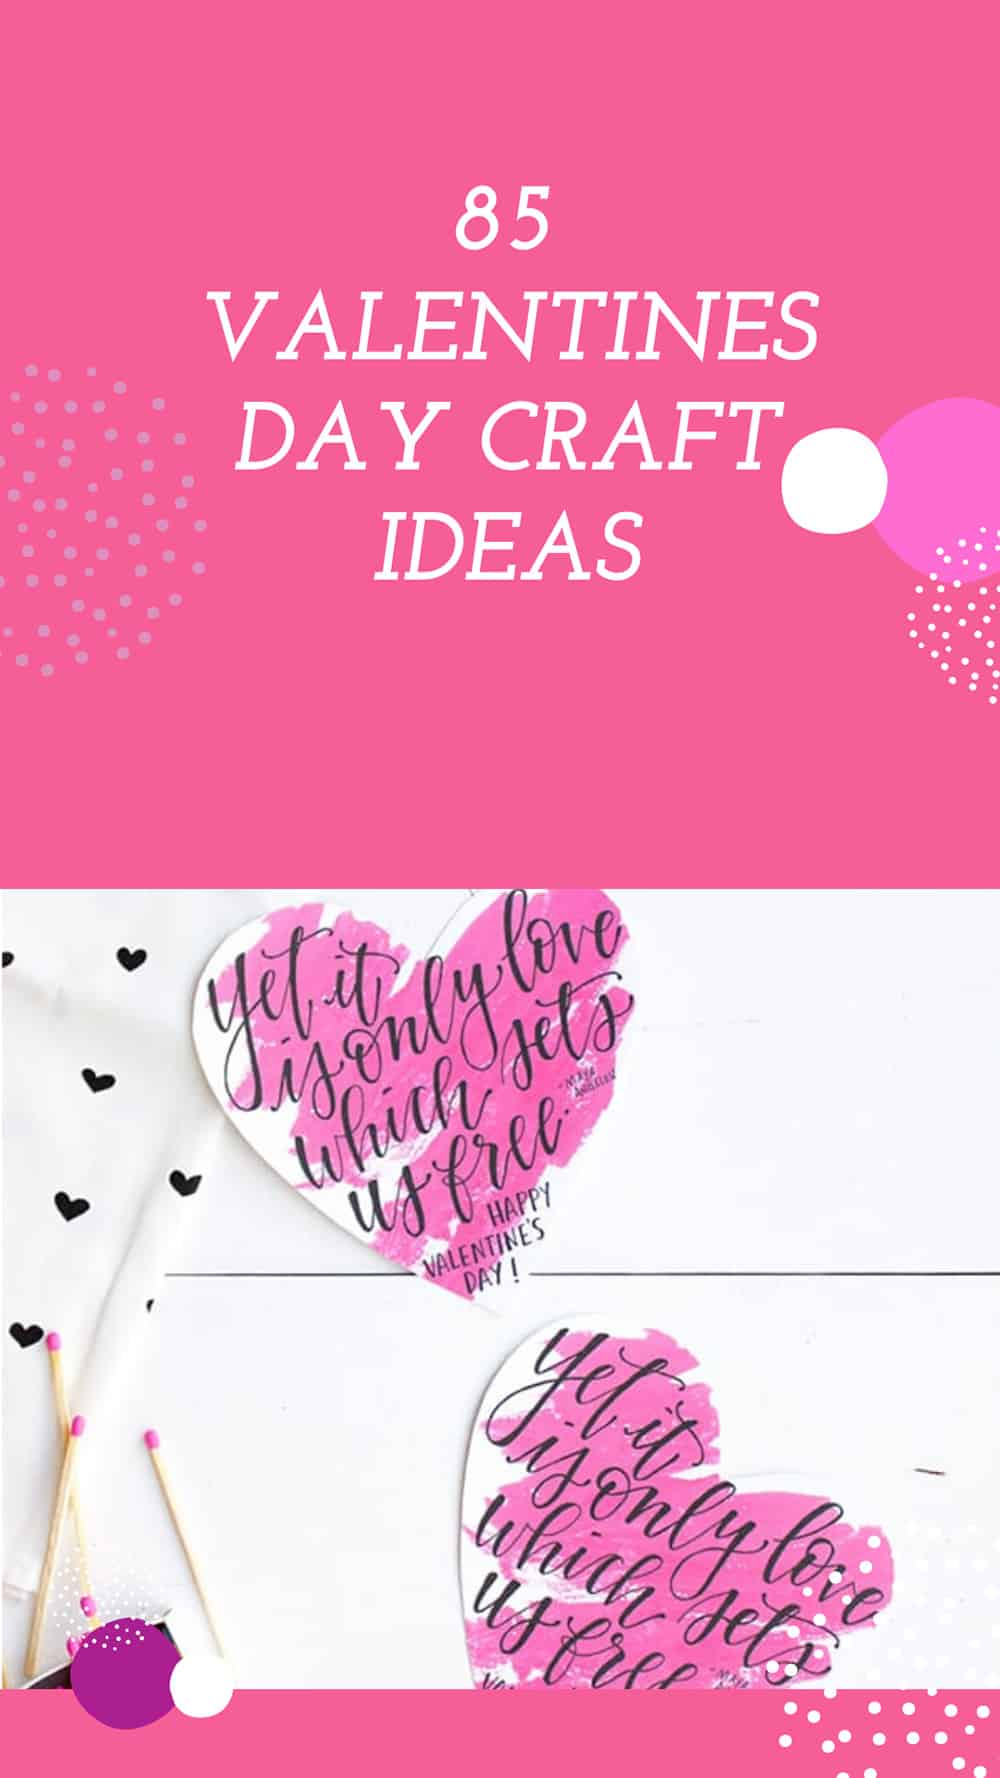 85 VALENTINES DAY CRAFT IDEAS PIN IT (2)